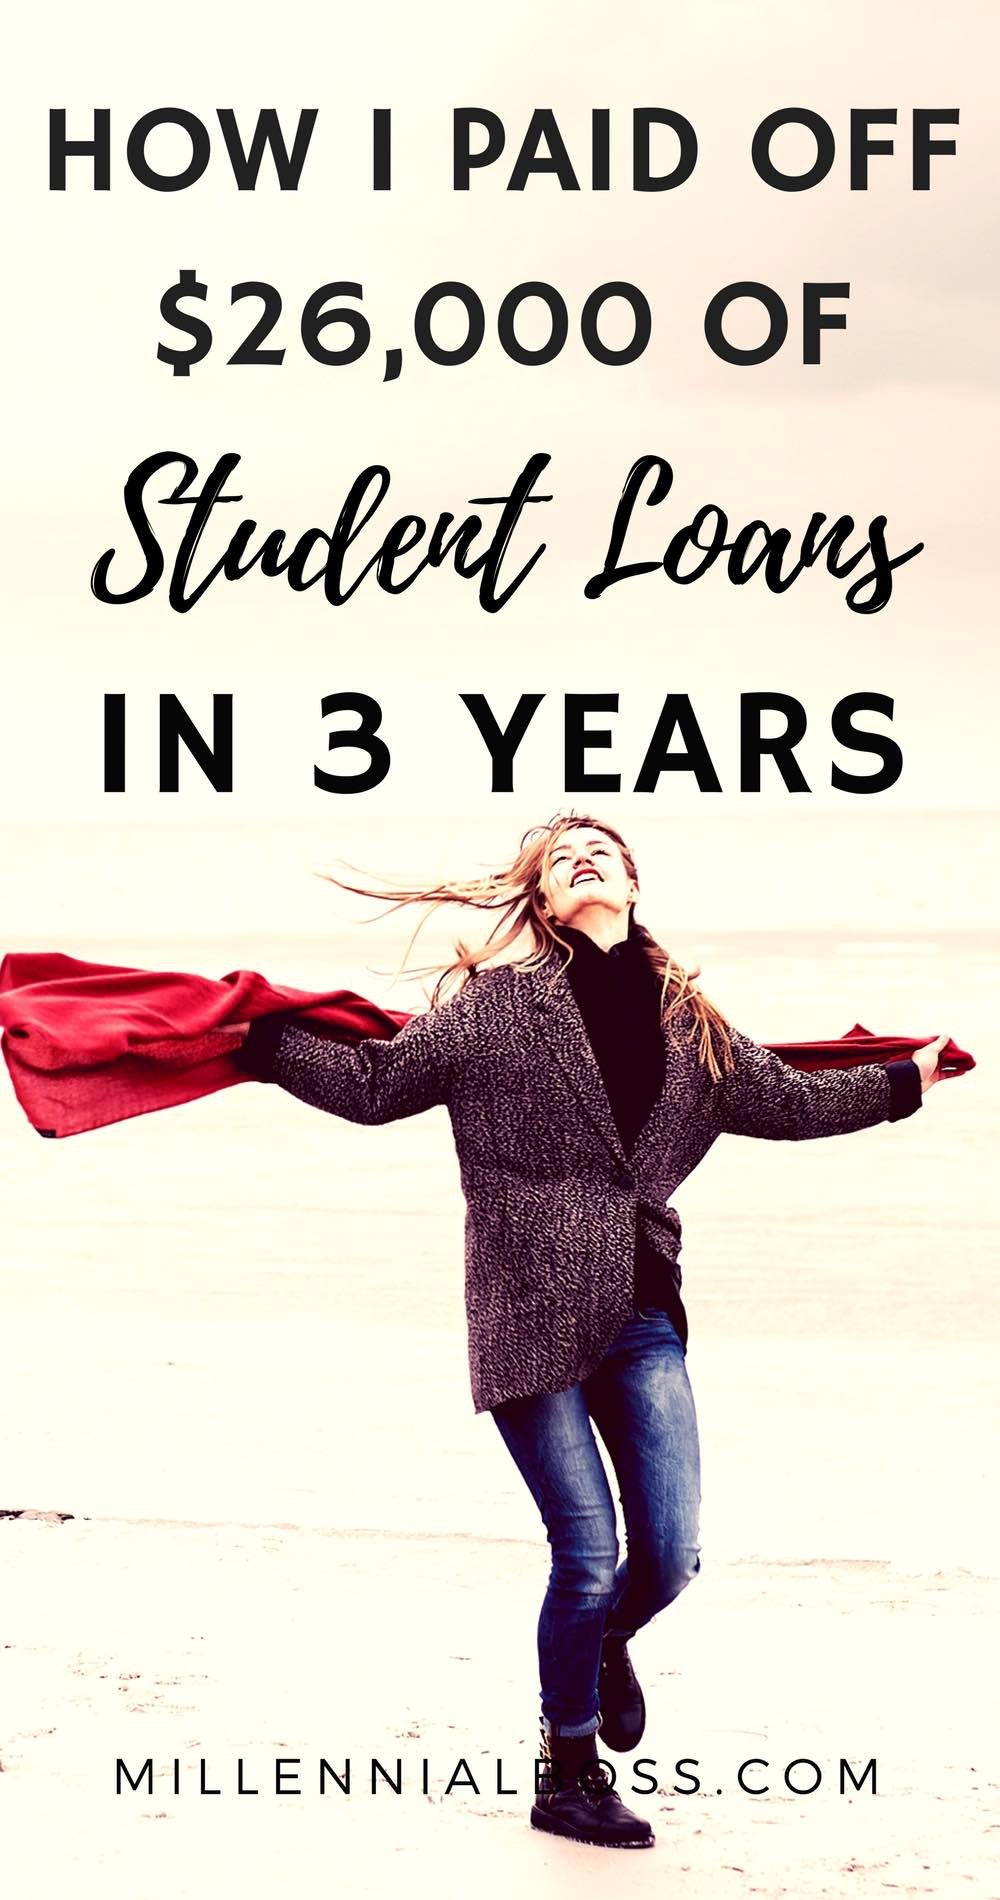 I have student loan debt and found this article really helpful. I have a debt payoff action plan.